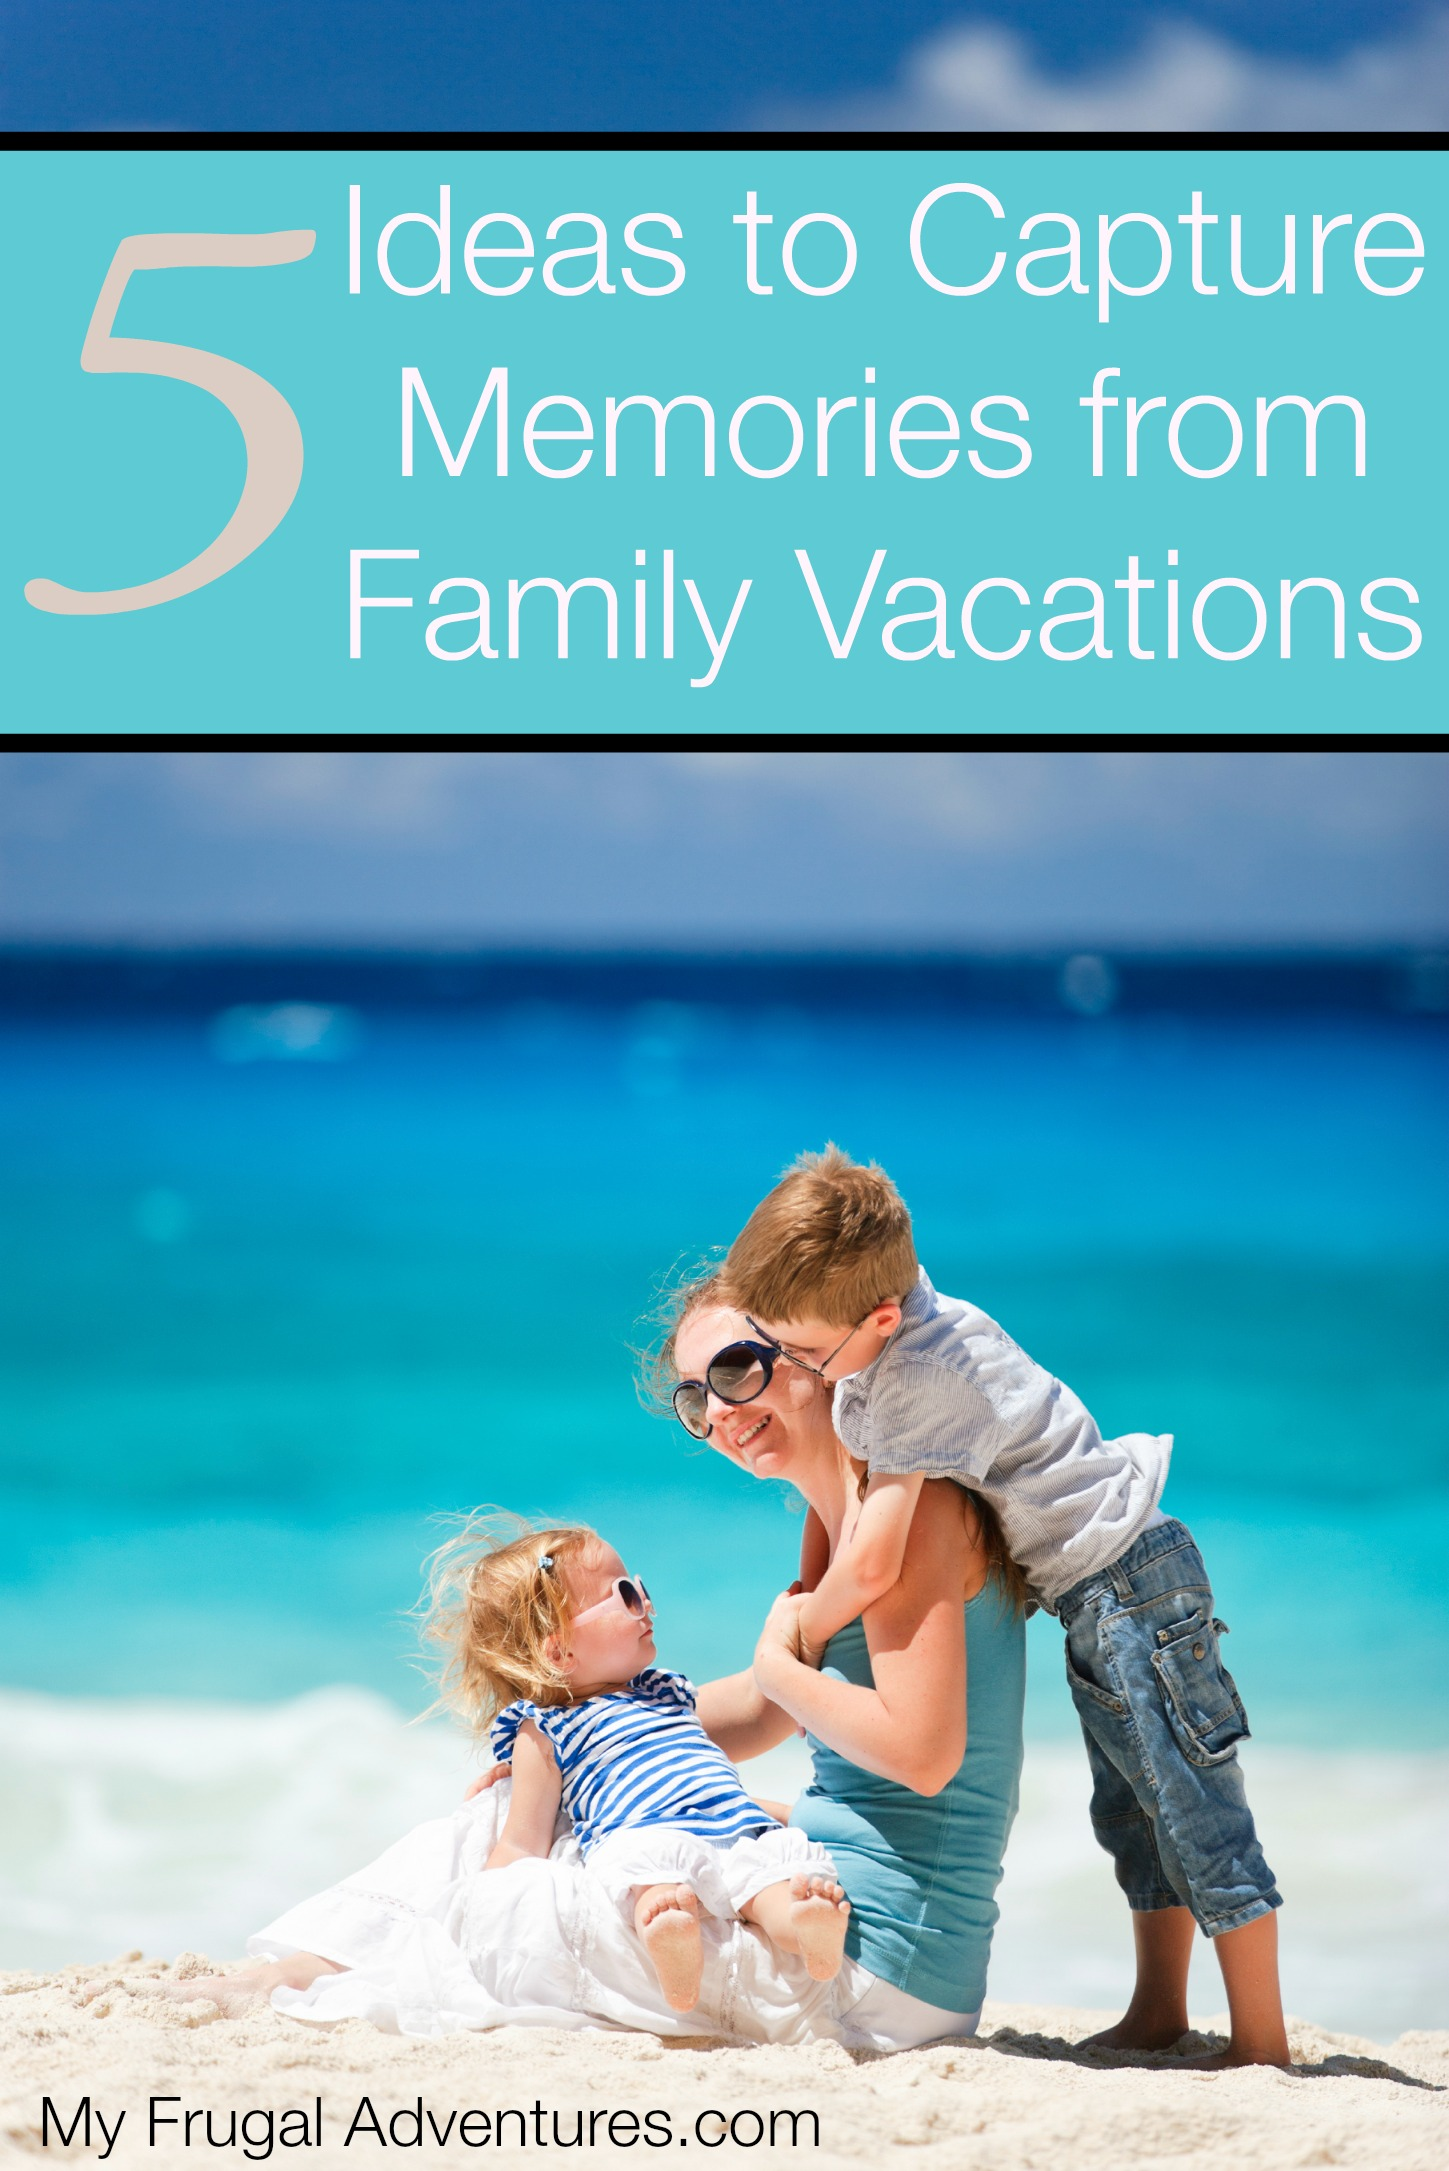 5 Ideas To Capture Memories From Family Vacations.